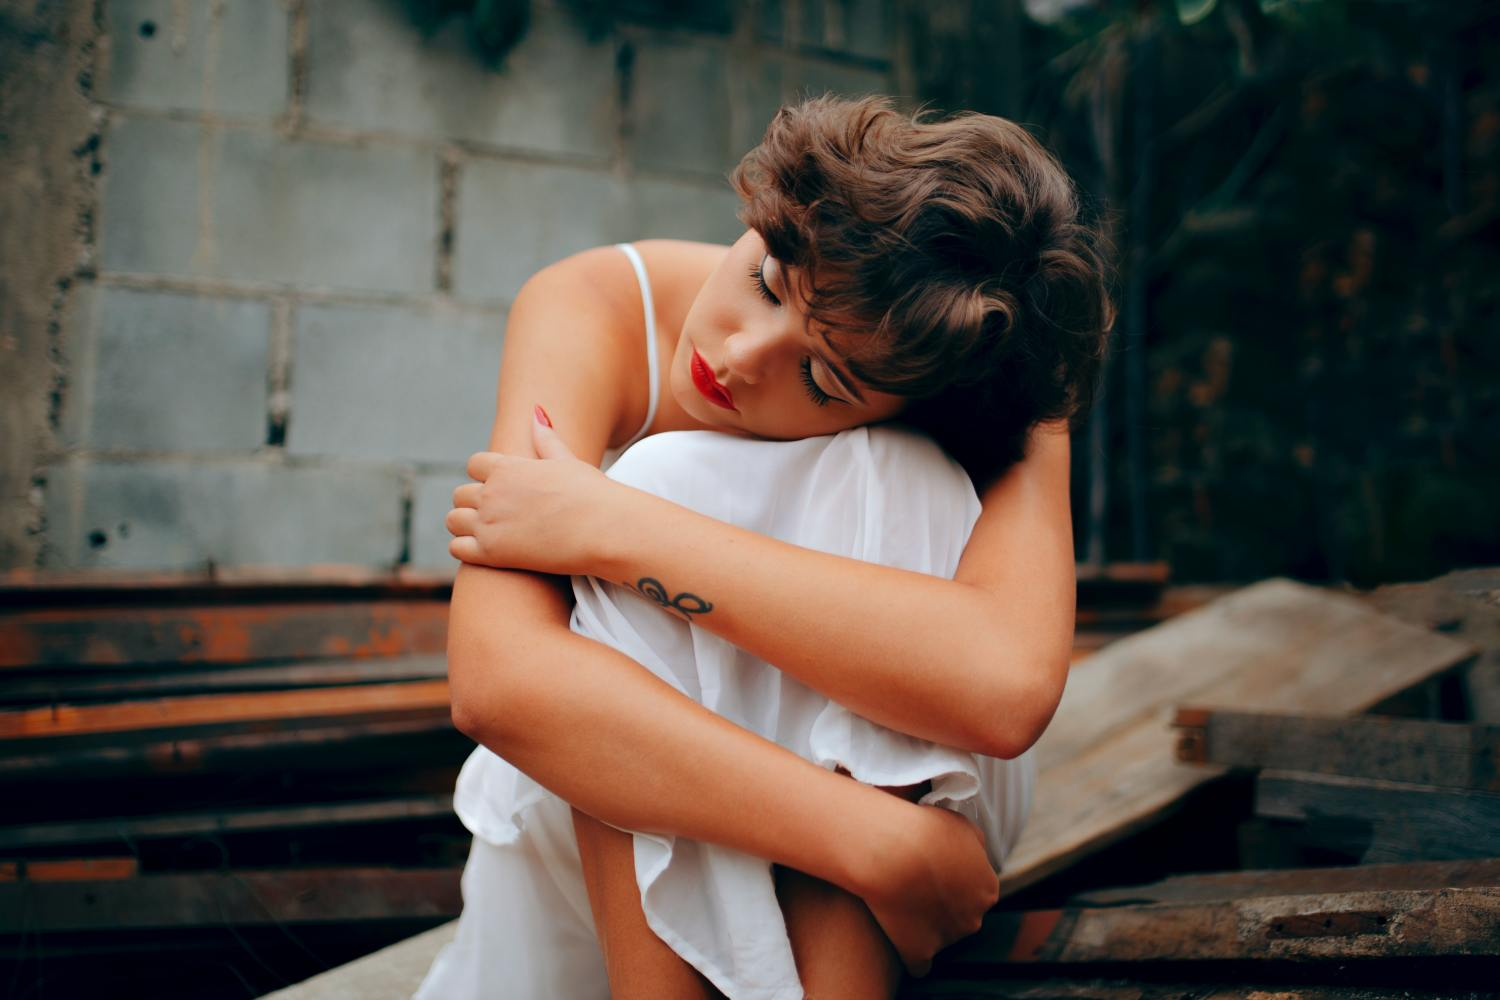 10 guys reveal the reasons men cheat in relationships